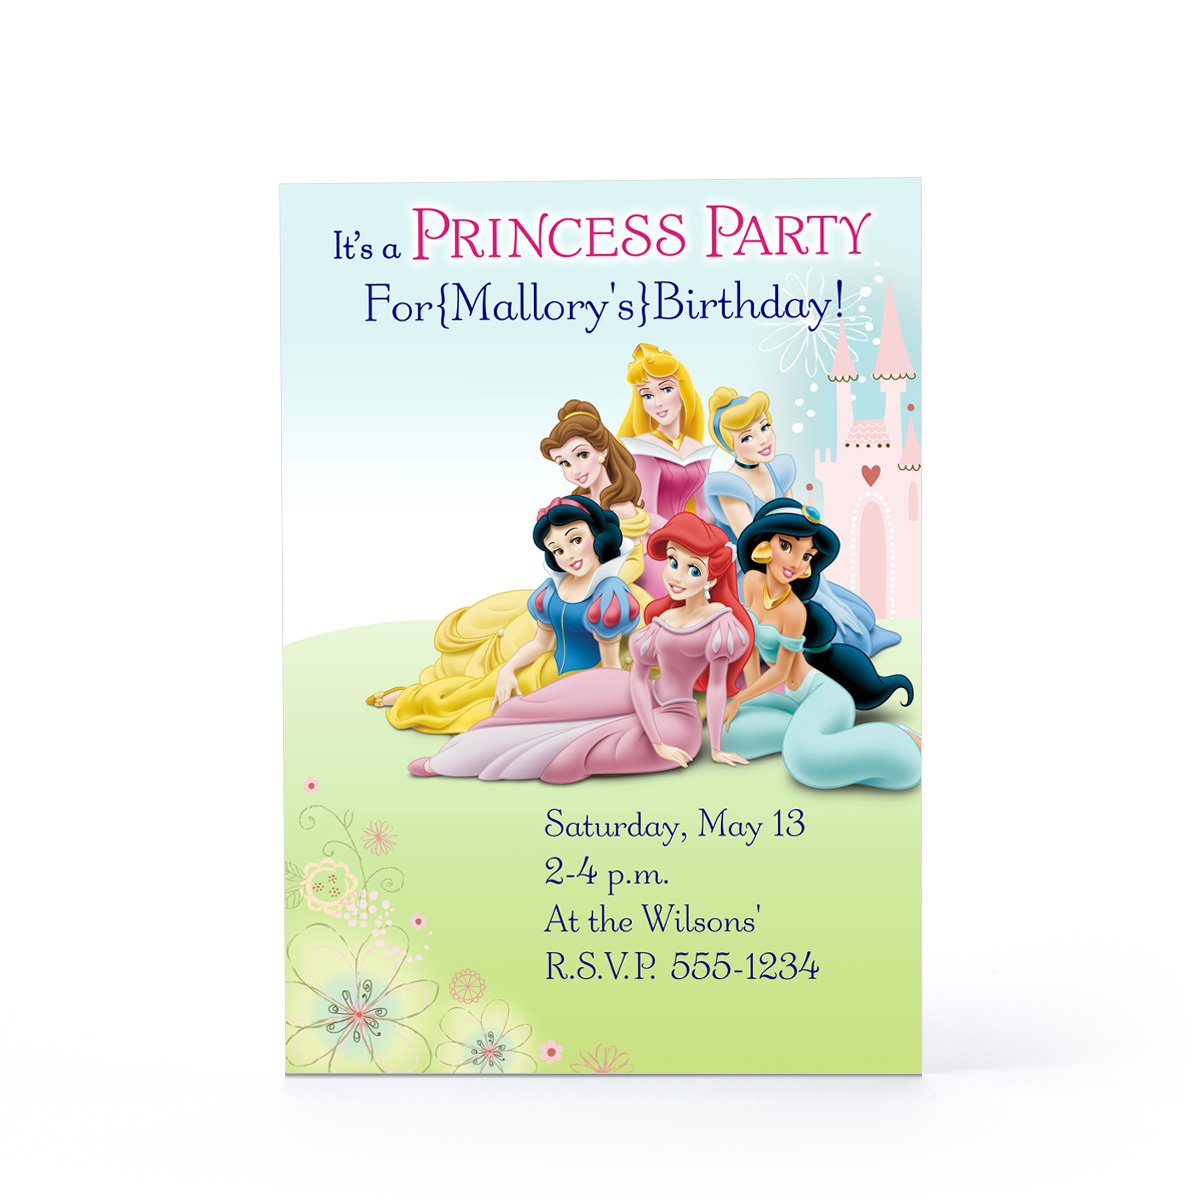 Hallmark Cards Printable Birthday Invitation